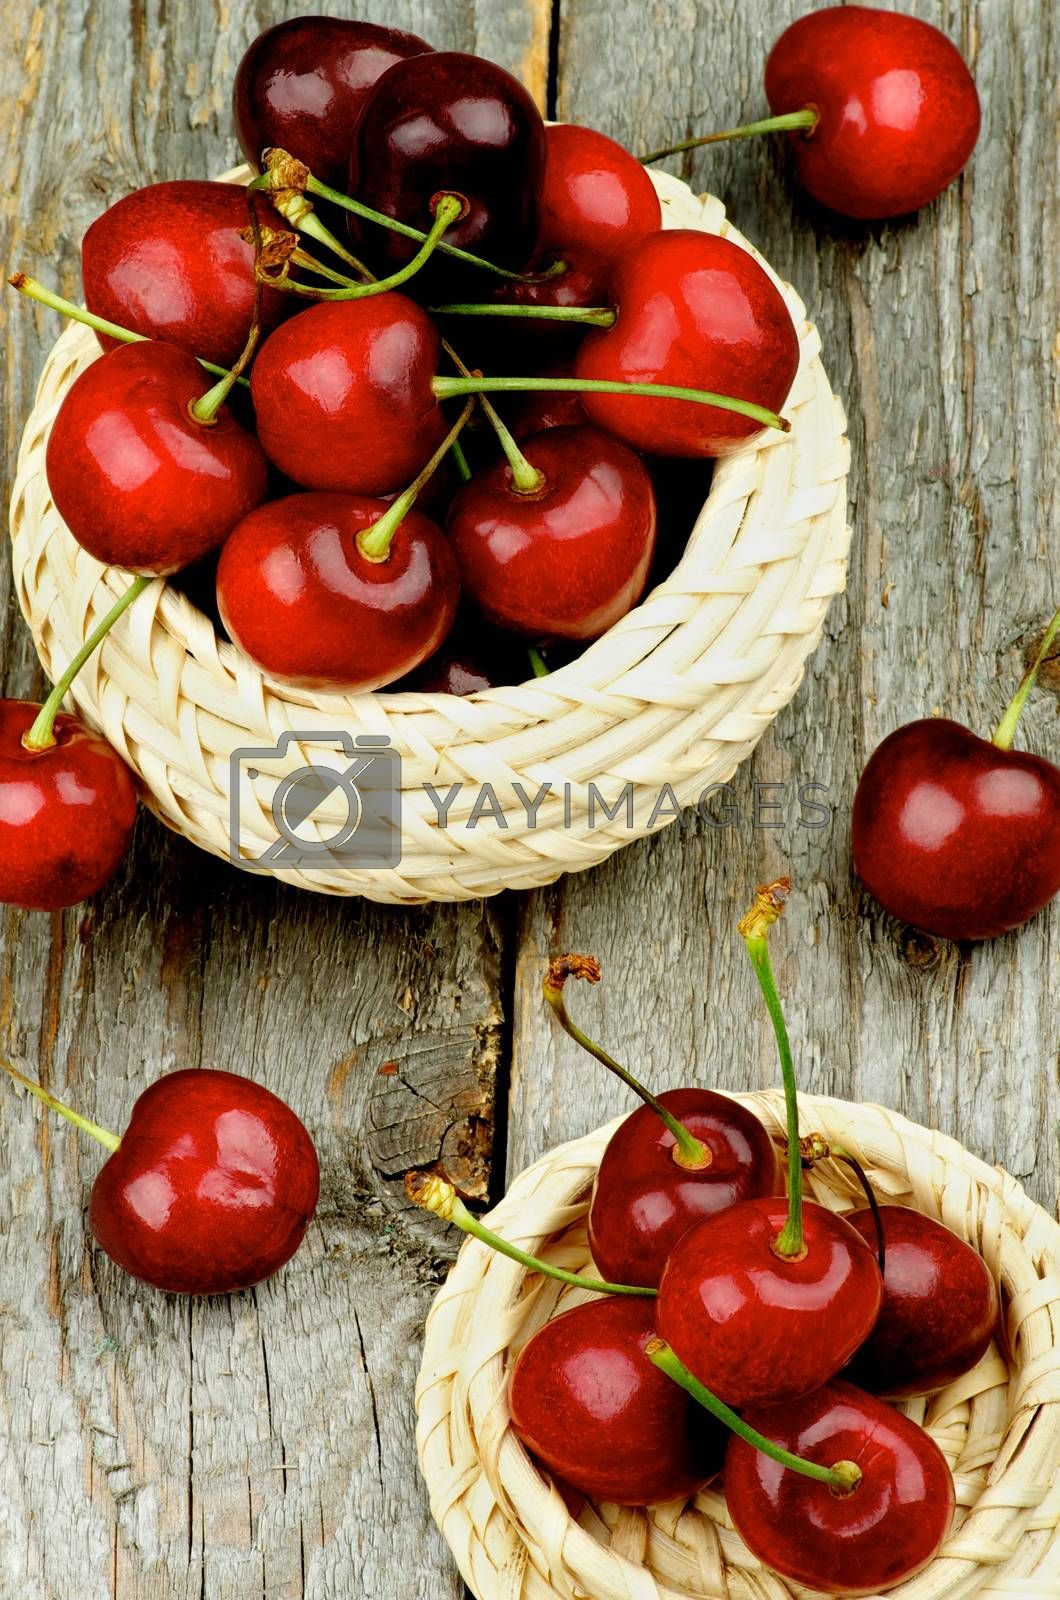 Ripe Red Sweet Cherries with Stems in Wicker Bowls closeup on Rustic Wooden background. Top View